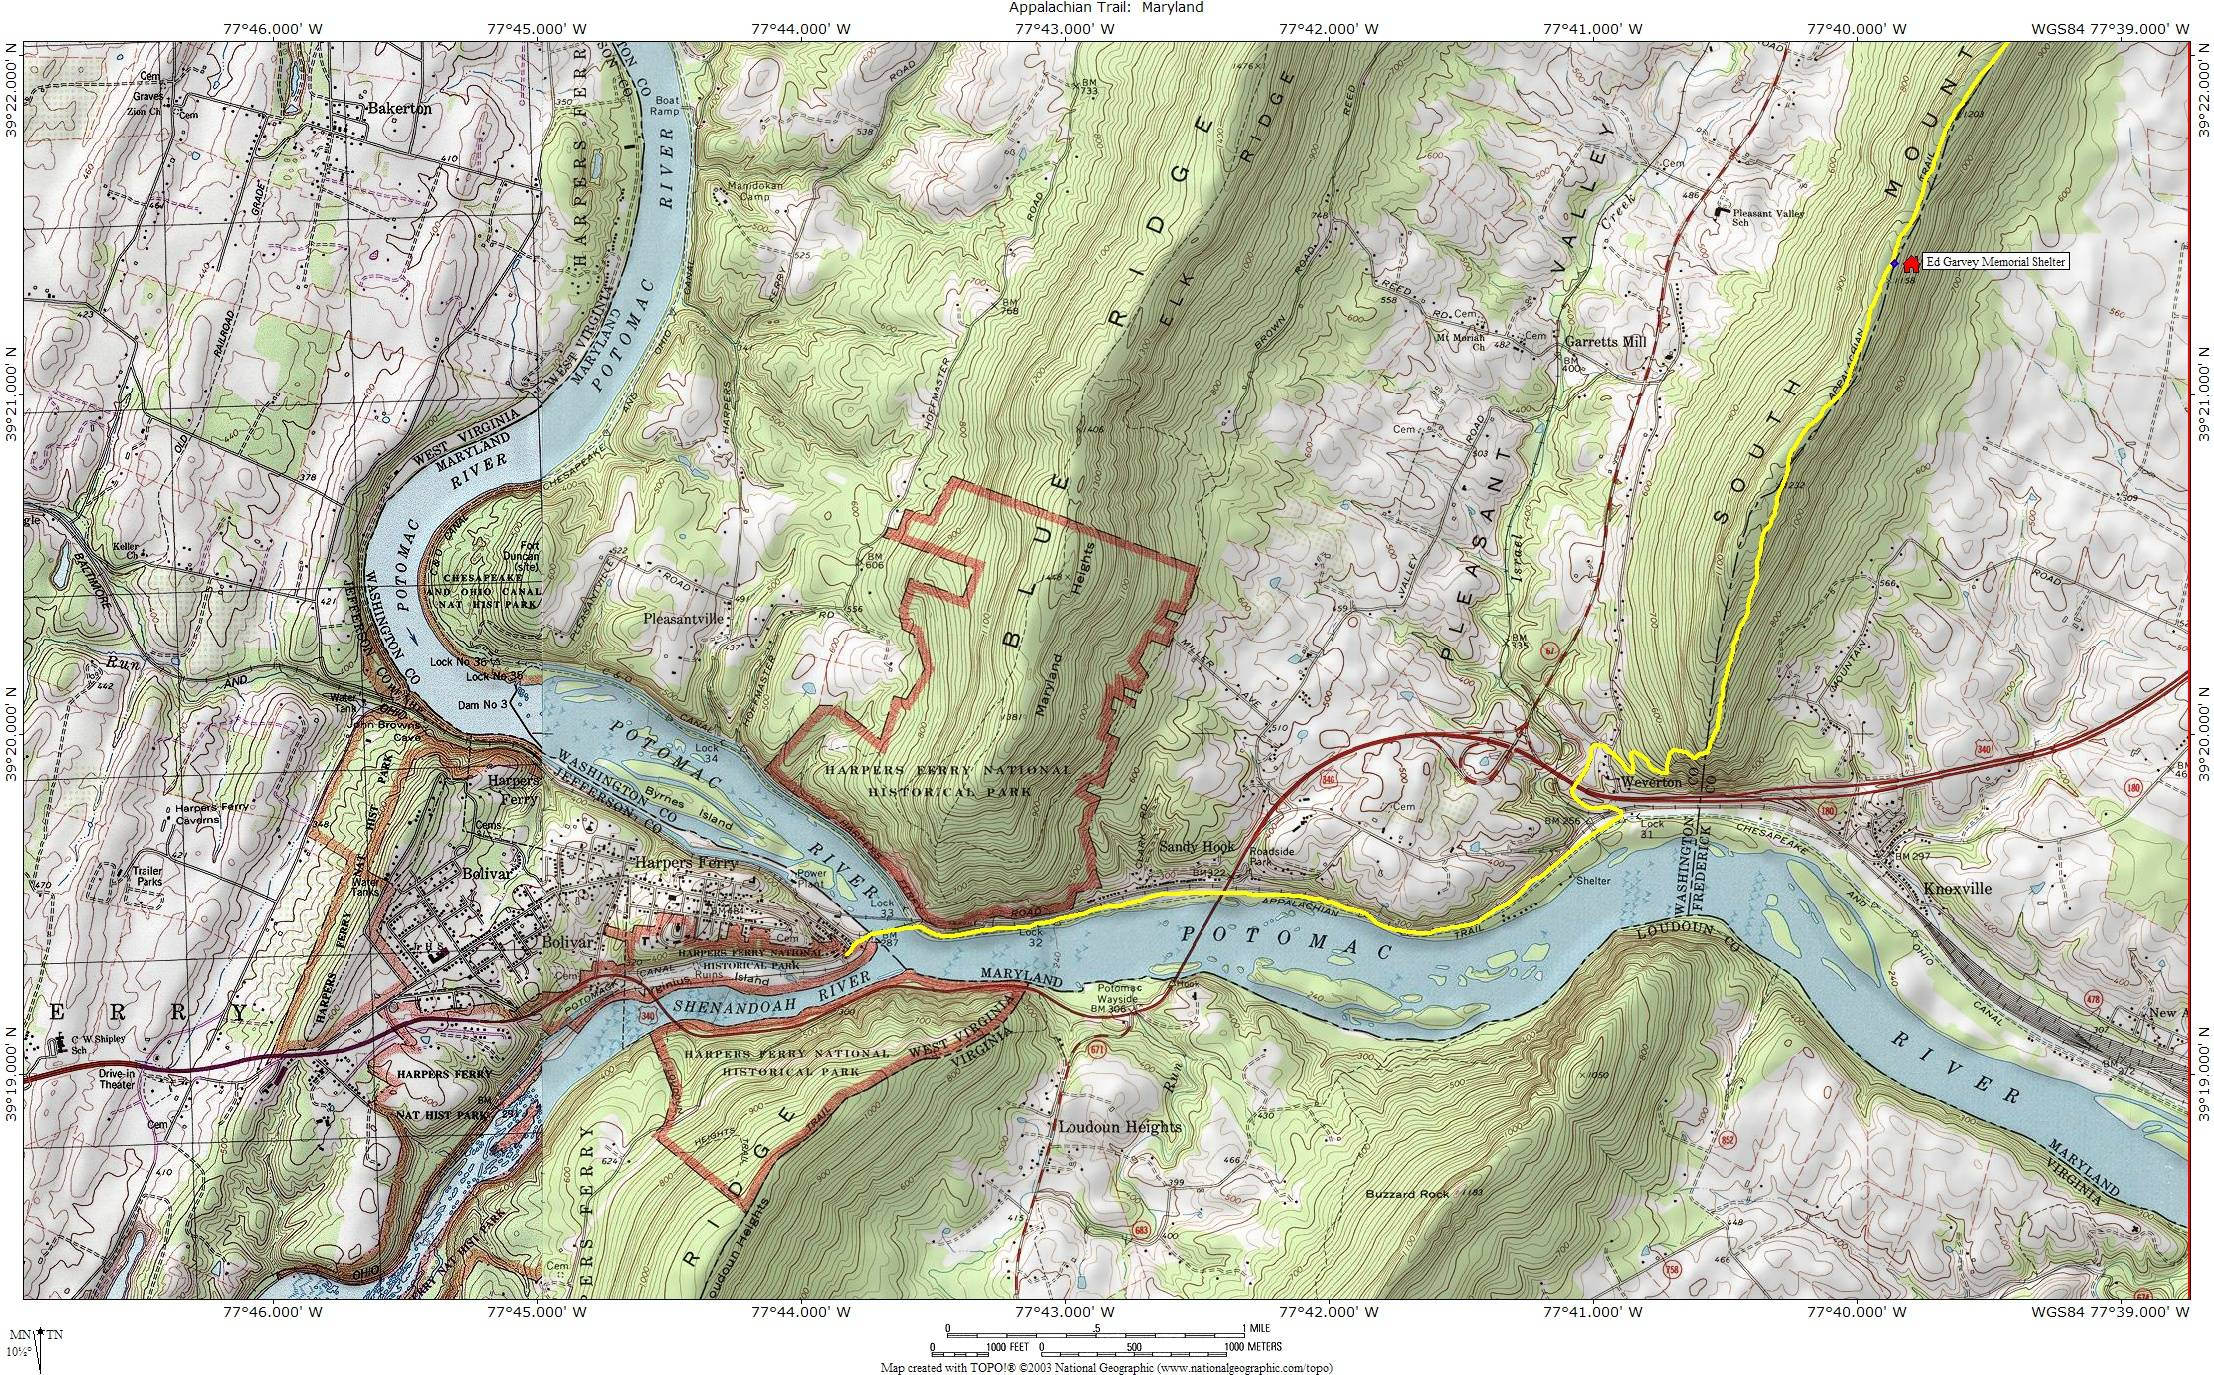 New Germany State Park Frederick and Western Maryland, East Coast IV: C&O Canal–Antietam-Harpers Ferry Area